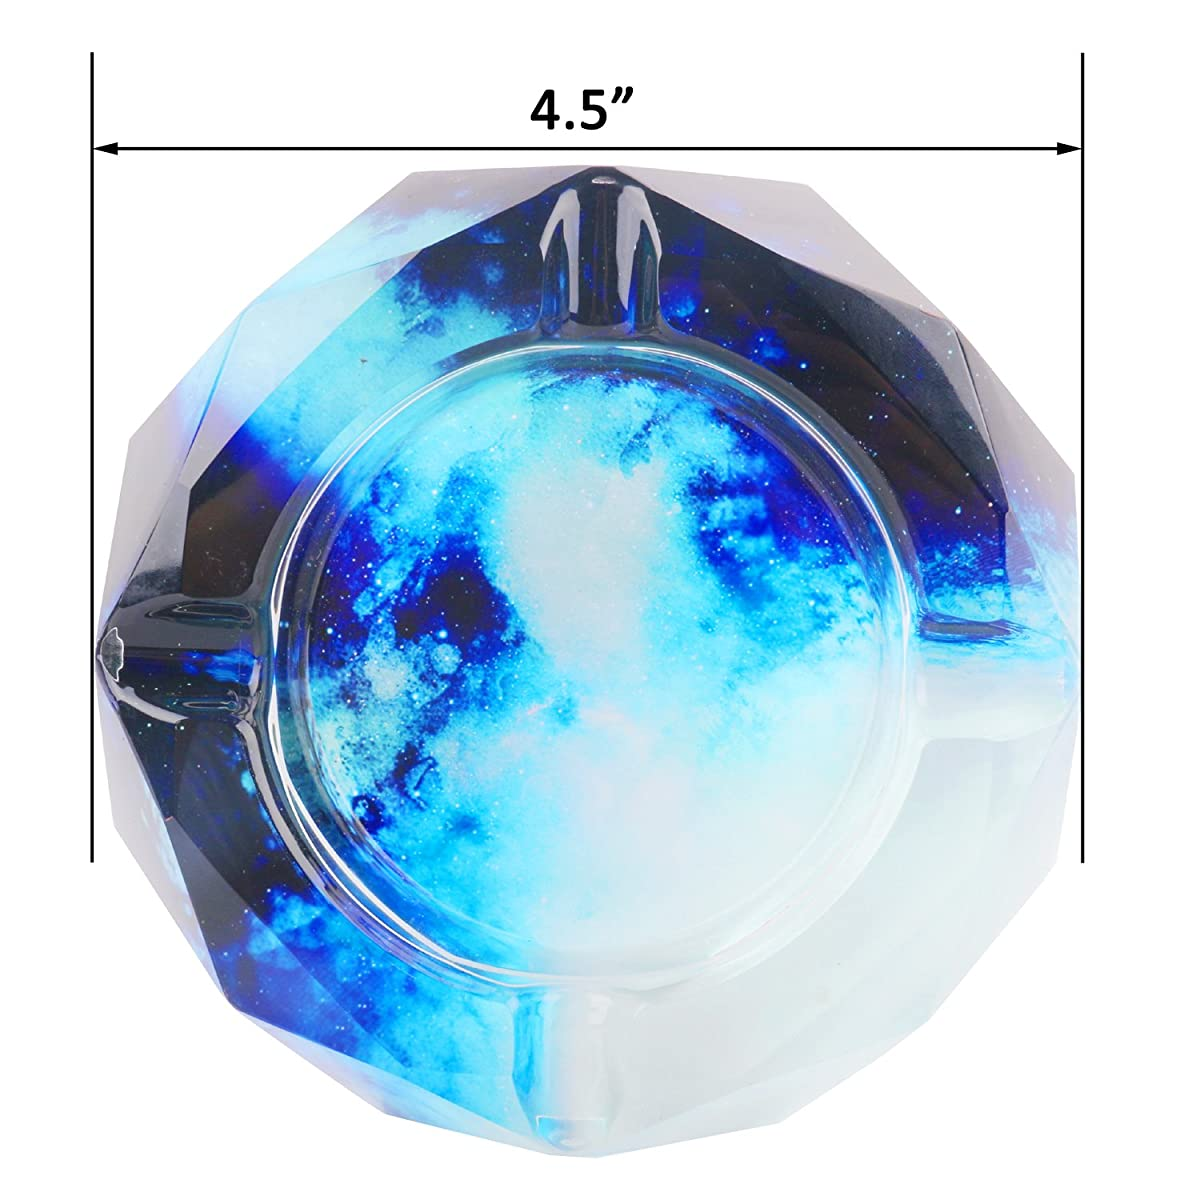 Kufox Crystal Outdoors Indoors Cigarette Ashtray Ash Holder Case, Colorful Pattern Home Office Tabletop Beautiful Decoration Craft (Blue SKY)